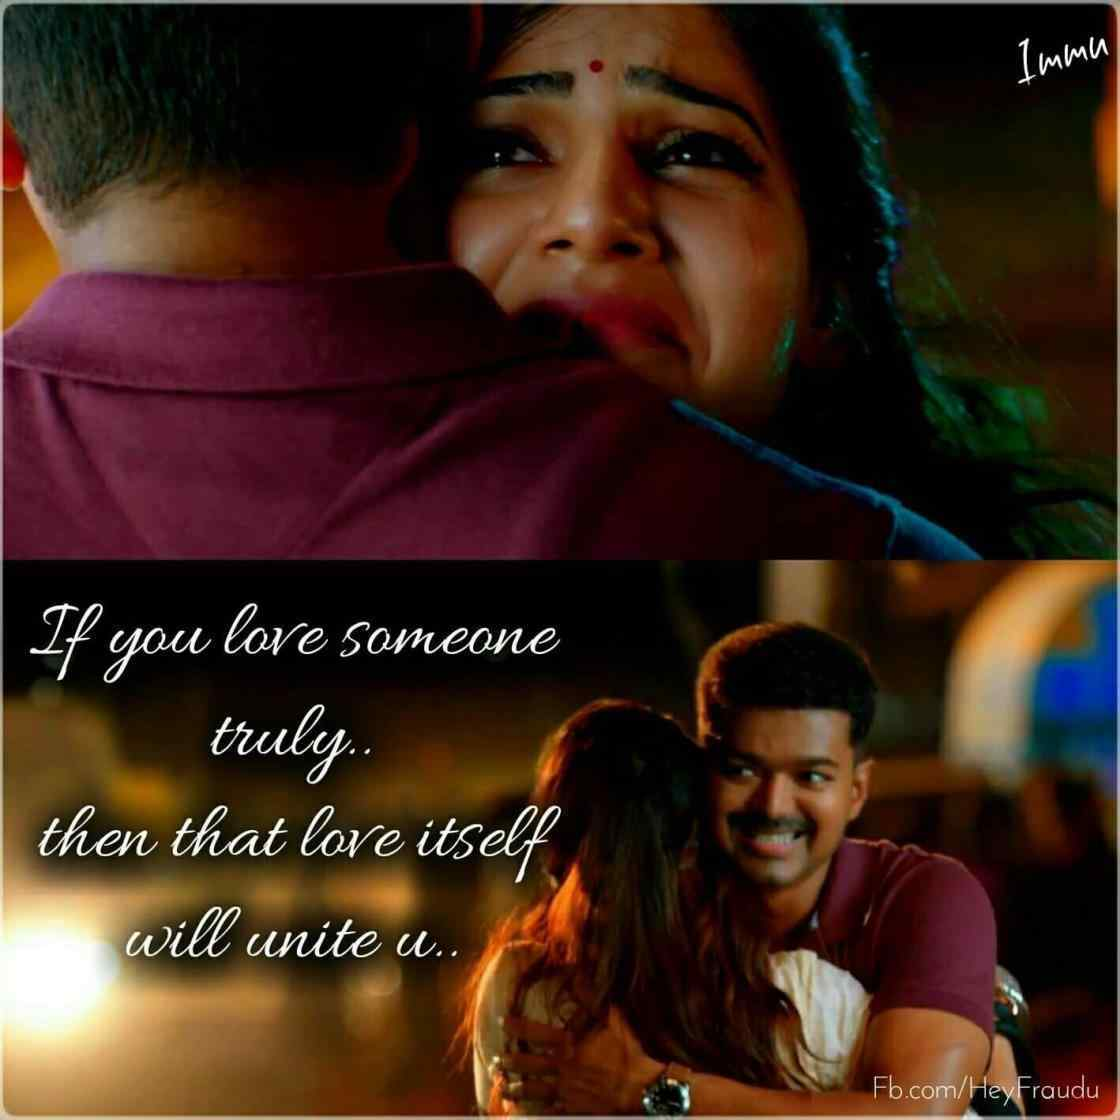 Google Movie Love Quotes For Wife In Tamil Quotes And Lyrics Google Love Whatsapp Images In Tamil P Os Love Love Quotes For So If You Want To Get This